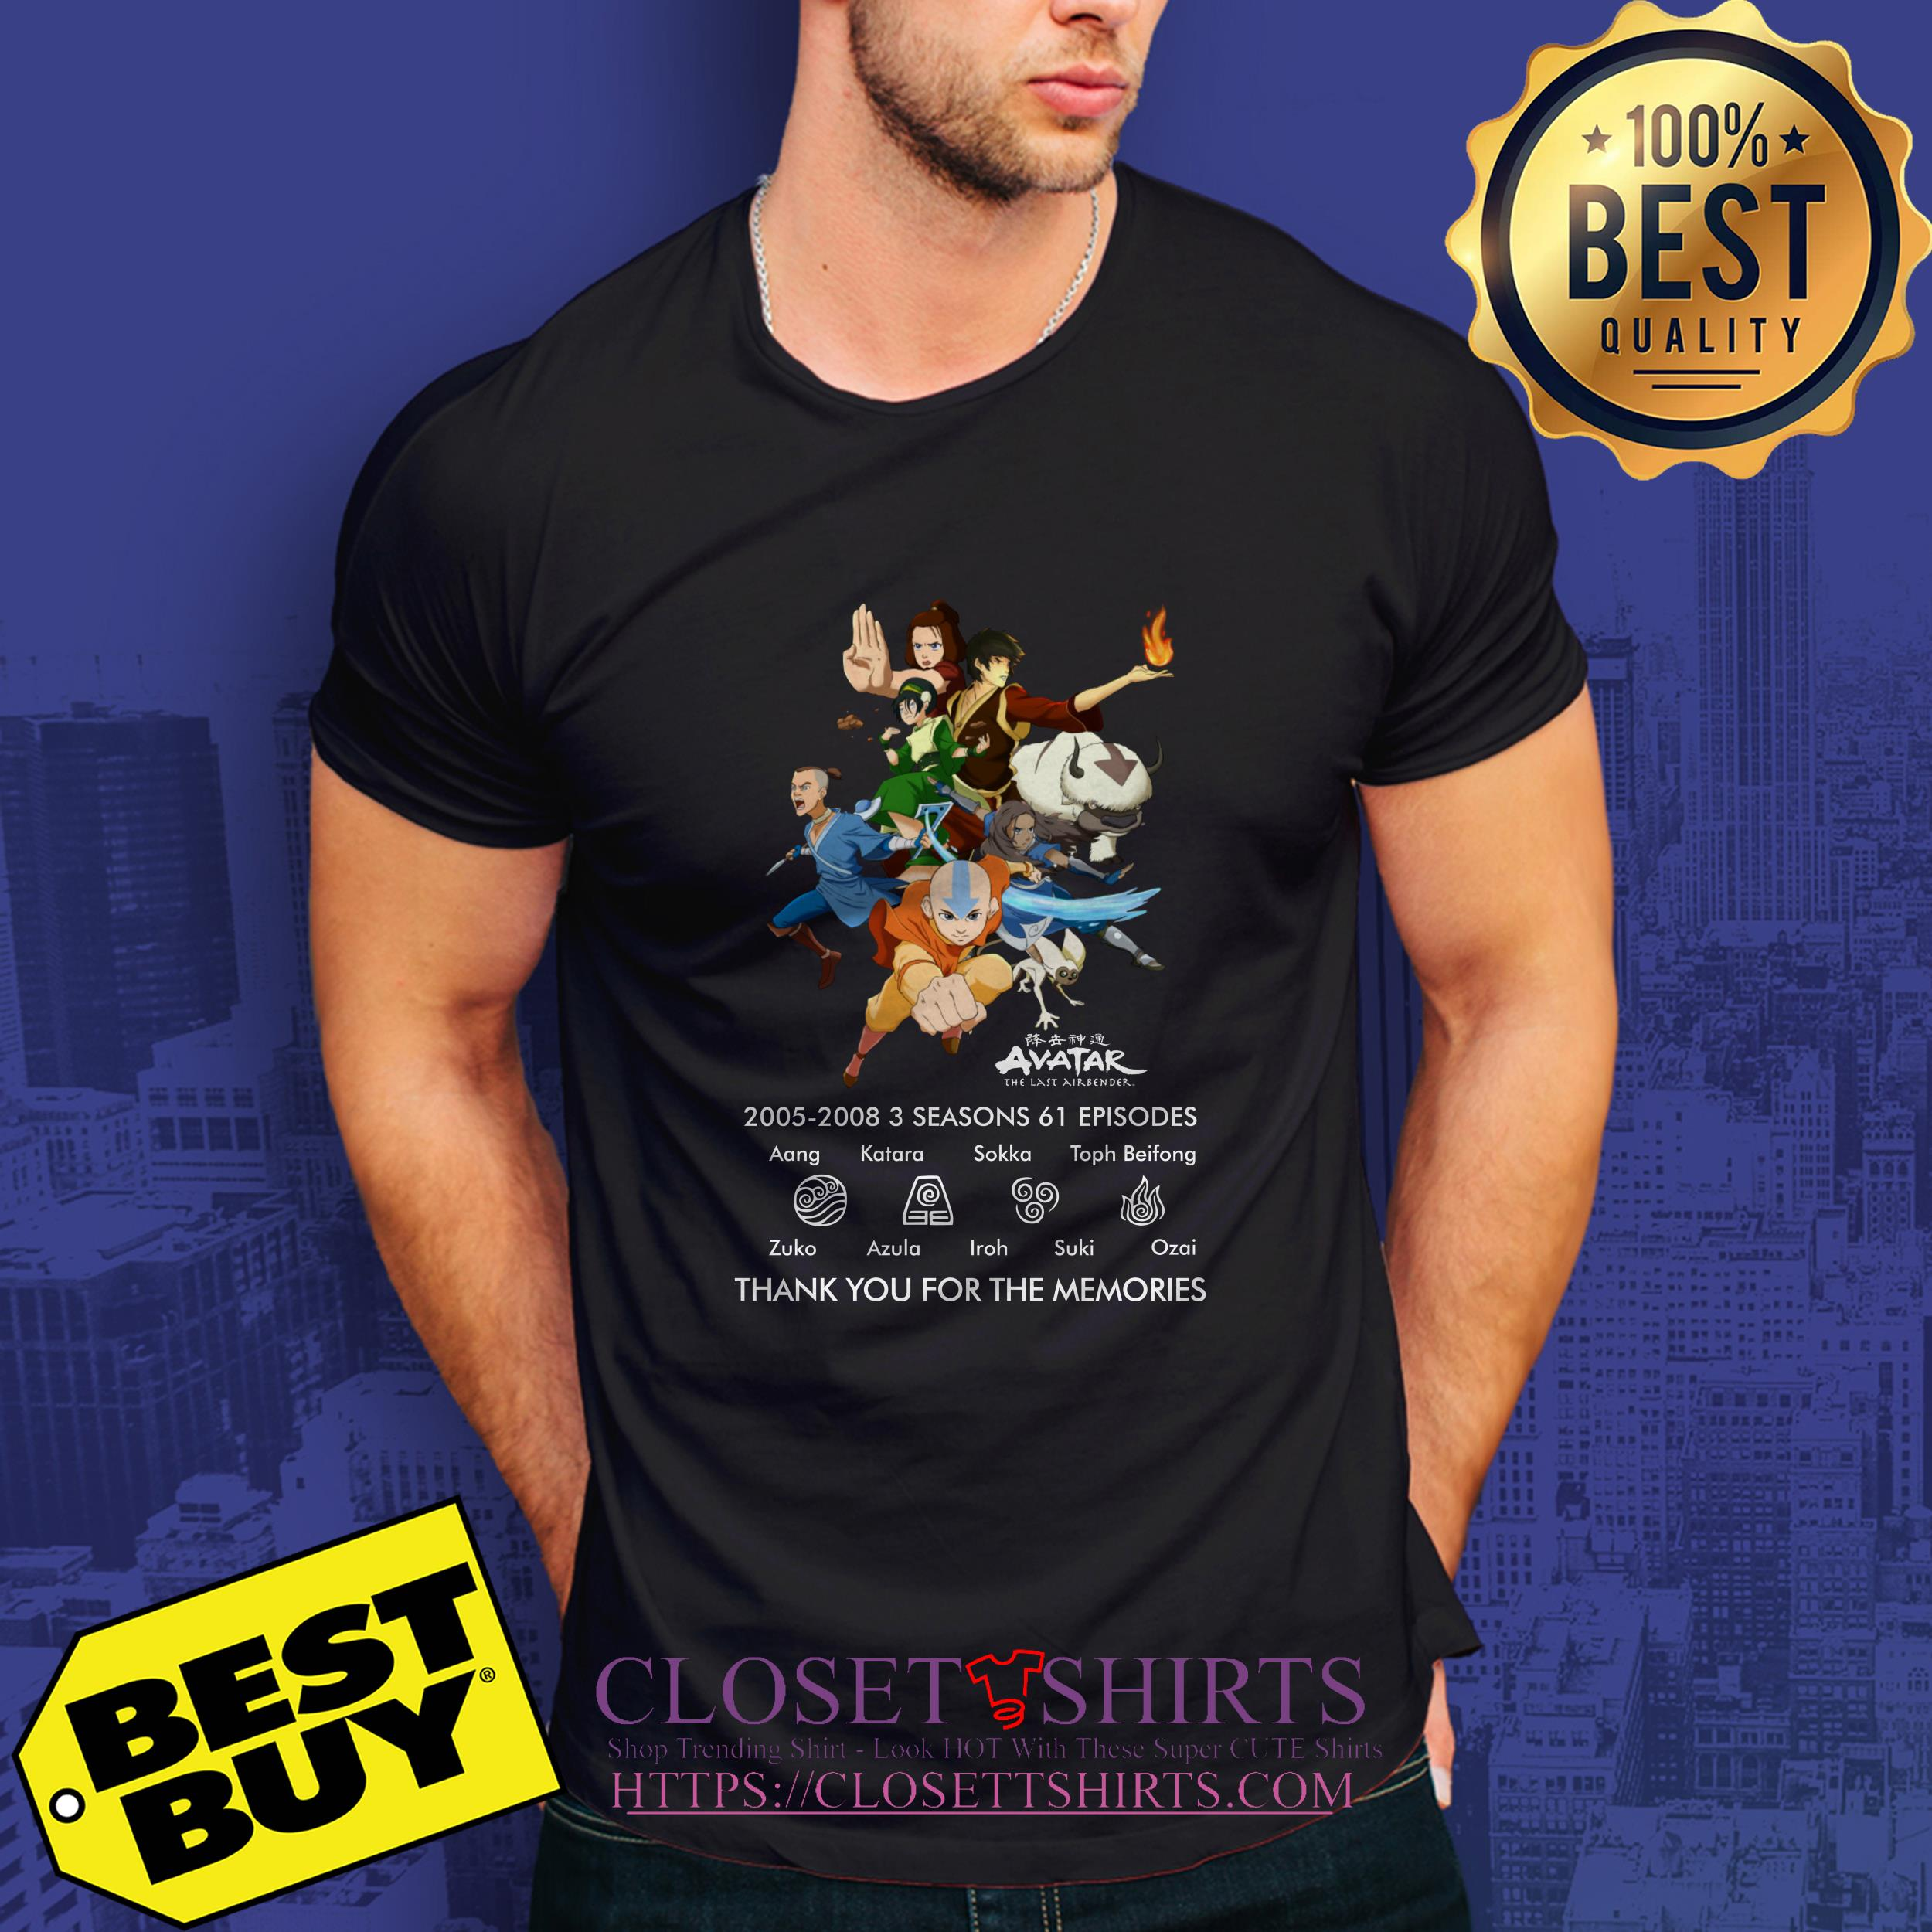 Avatar The Last Airbender 2005 2008 3 Thank You For The Memories v-neck